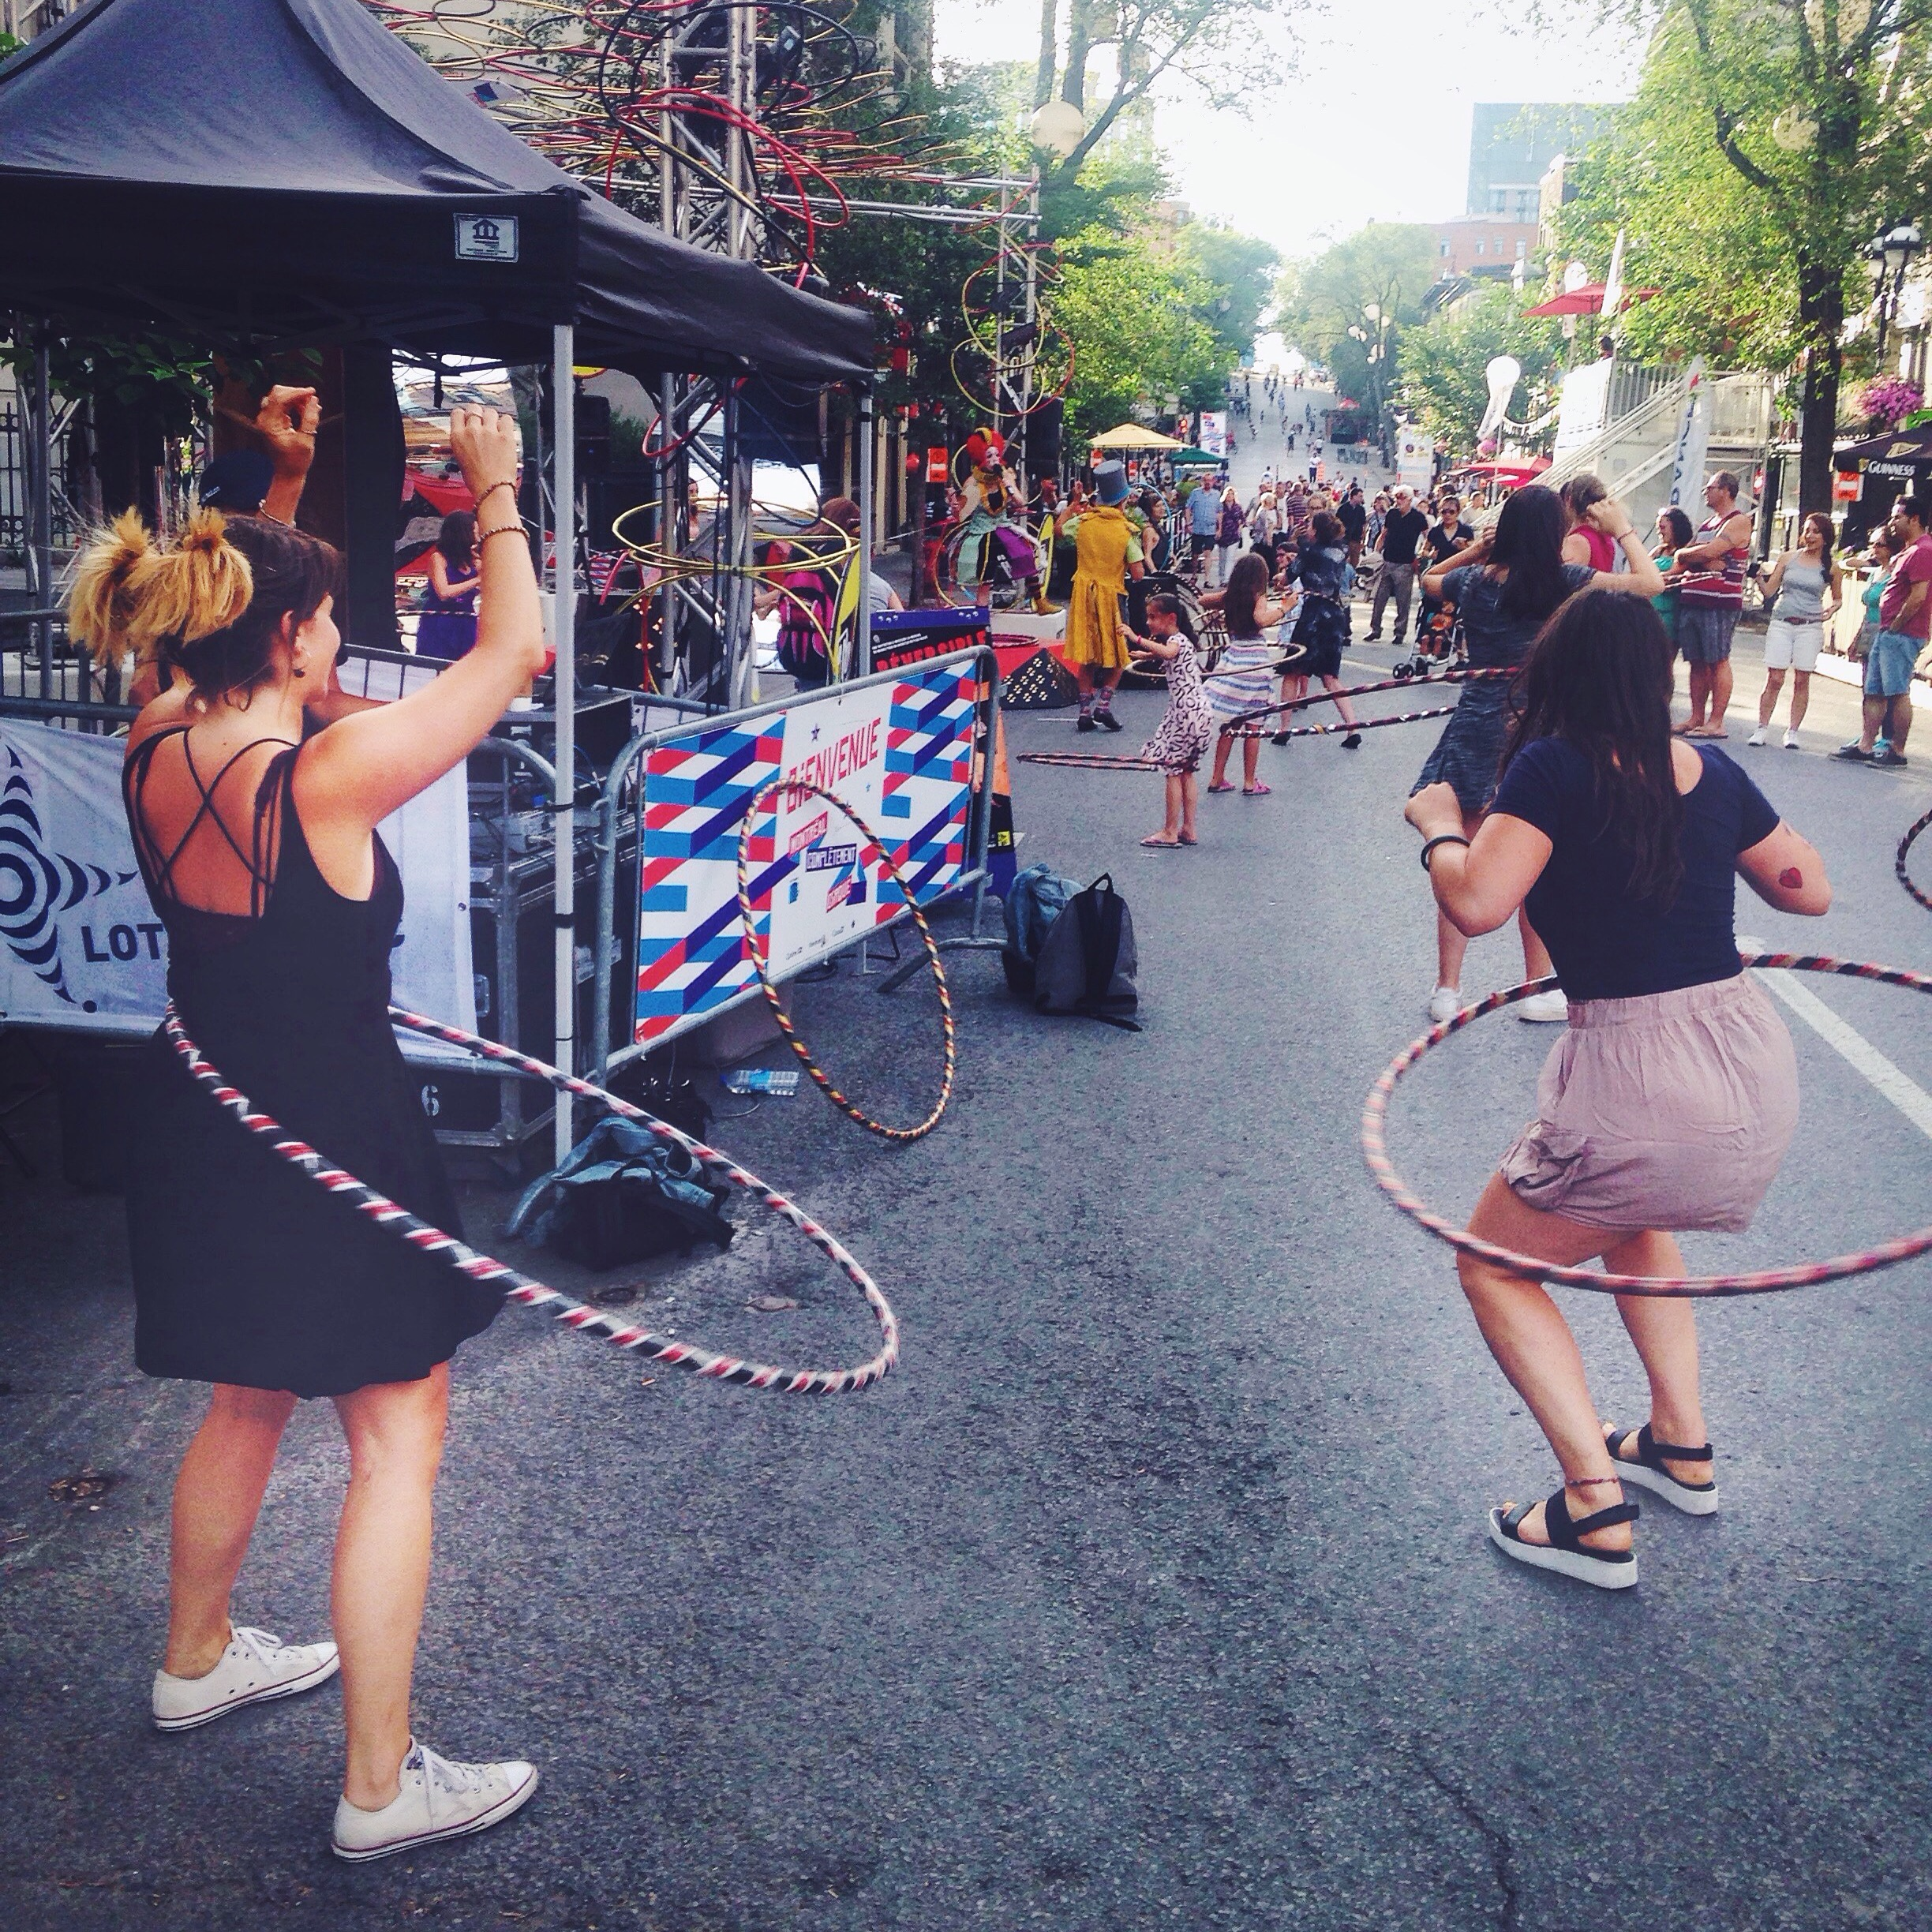 Hula hooping at a circus street festival on Rue St- Denis